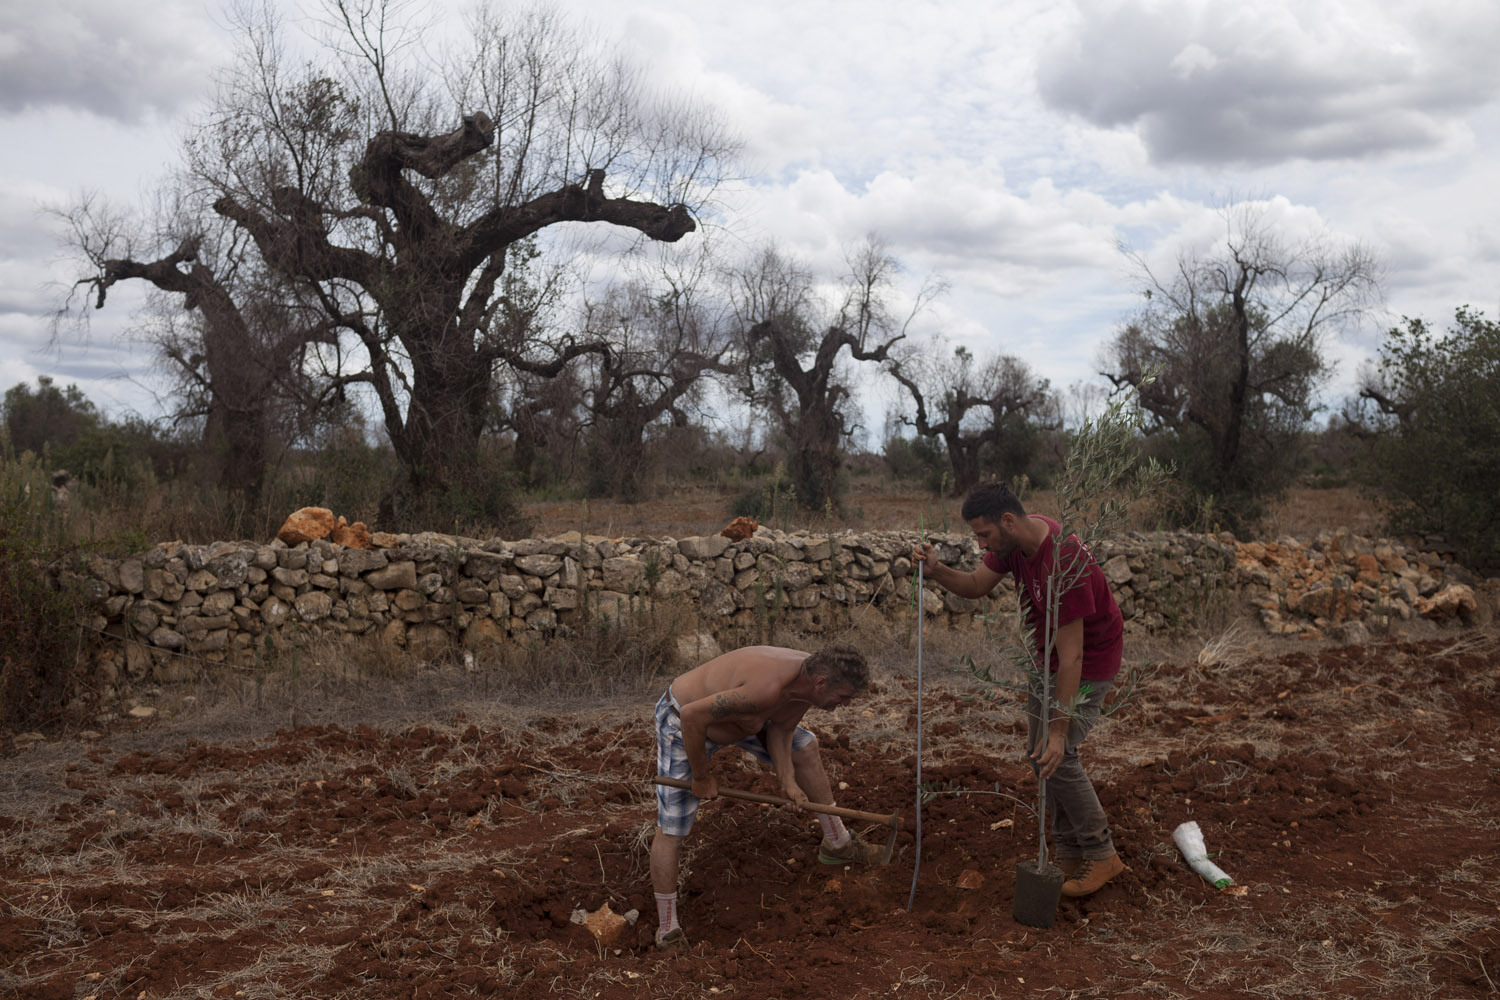 A young farmer planting new olive trees where his grandfather's trees once stood, in an area of Salento where almost all the trees are now dead. He left his job in the north of the country and moved back to help his father through this difficult time, and hopes to be able to produce some olive oil in a few years.